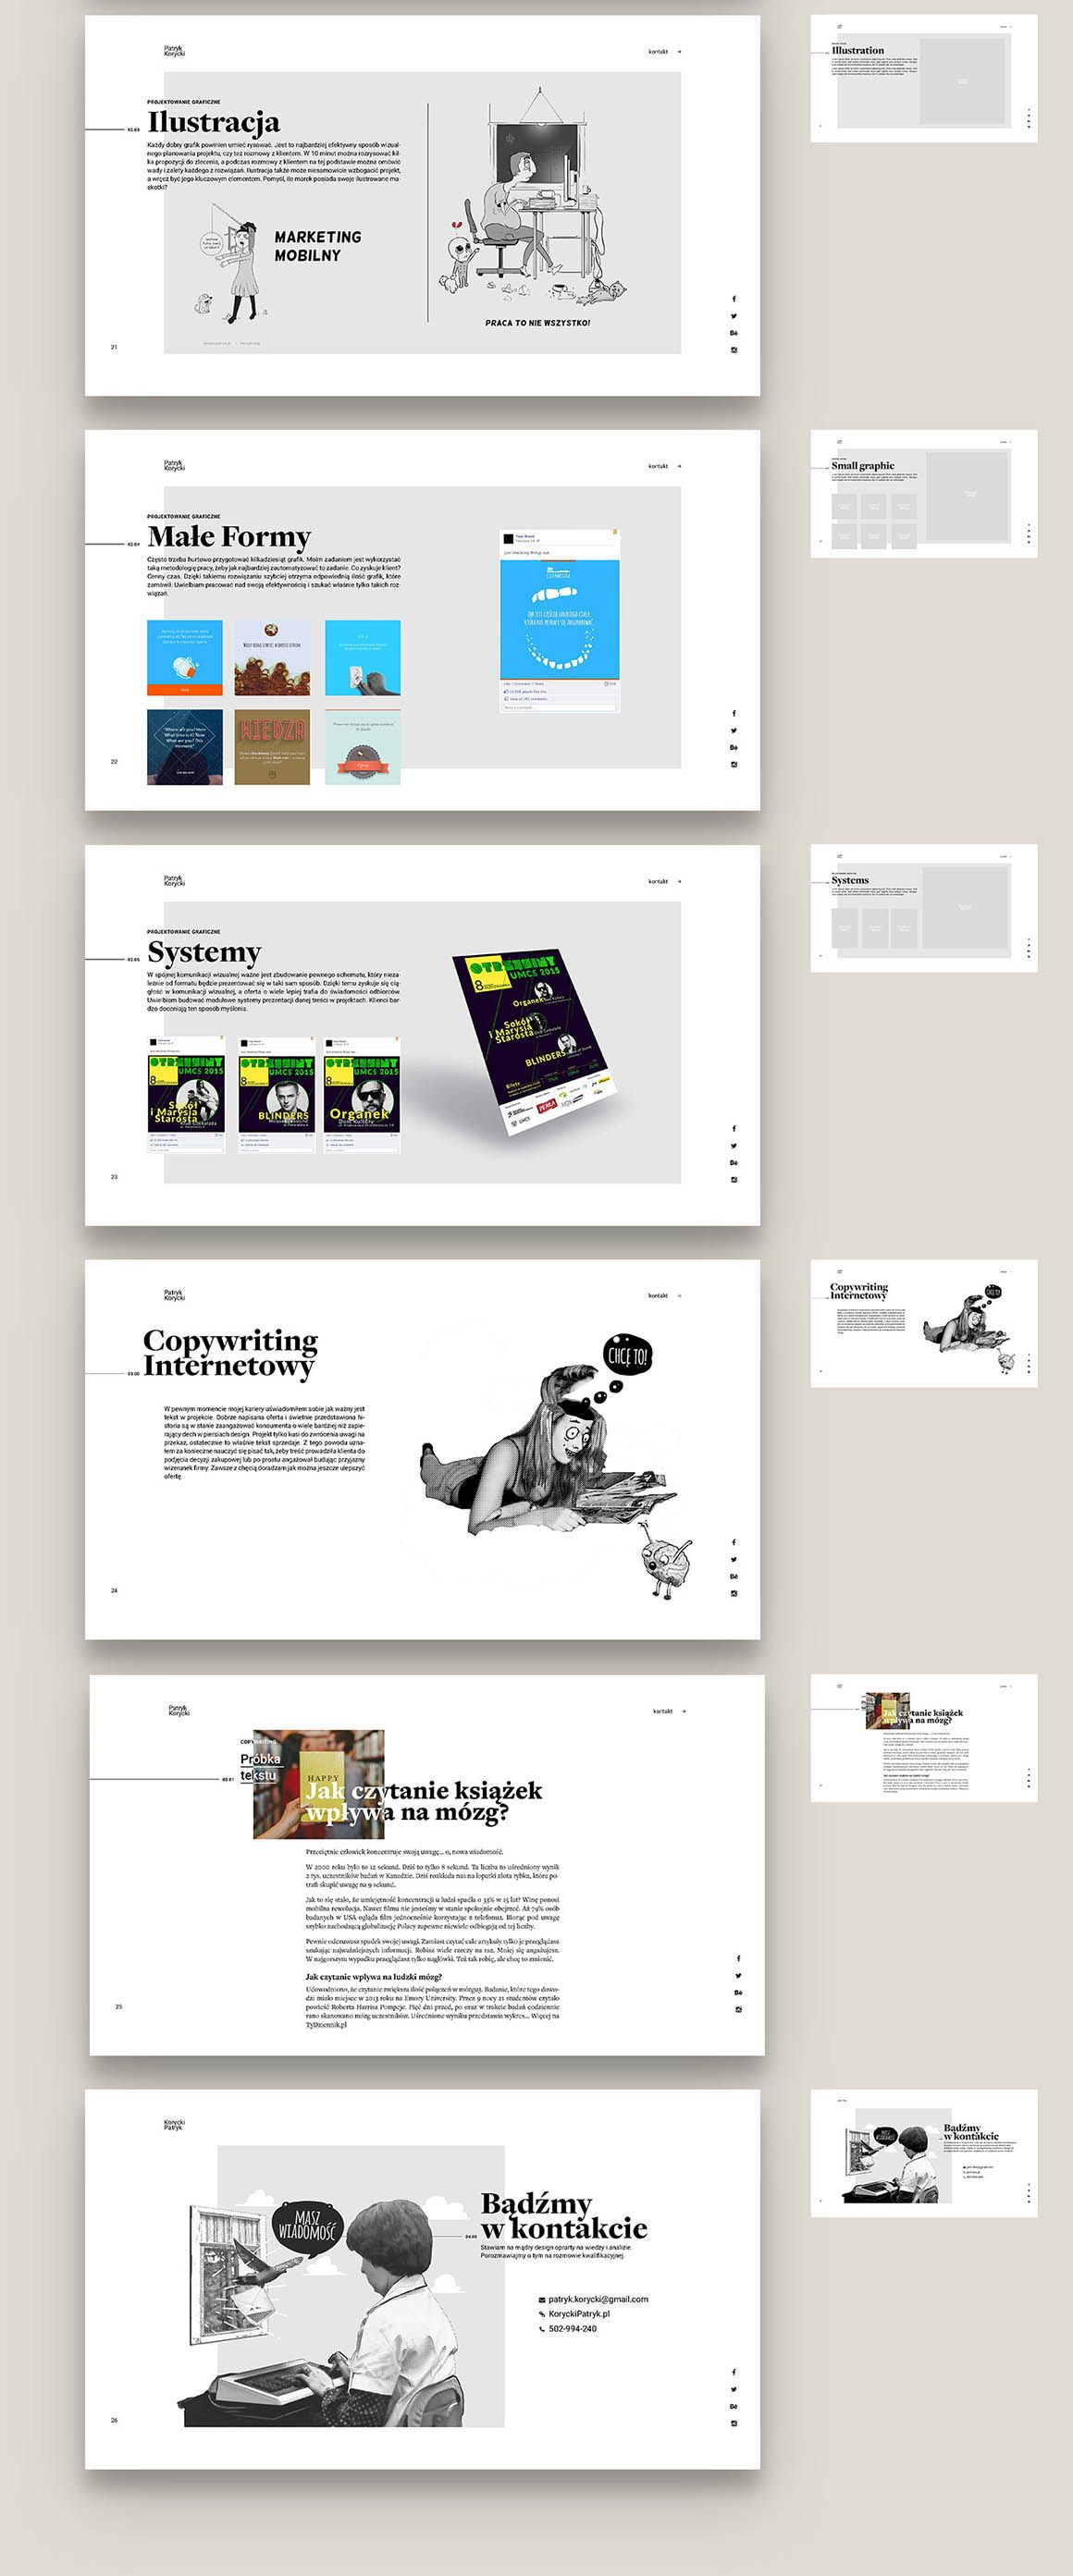 Share It Free Minimalistic Portfolio Brochure Template In Pdf Adobe Indesign Format Fr In 2020 Portfolio Template Design Pdf Portfolio Design Portfolio Design Layout